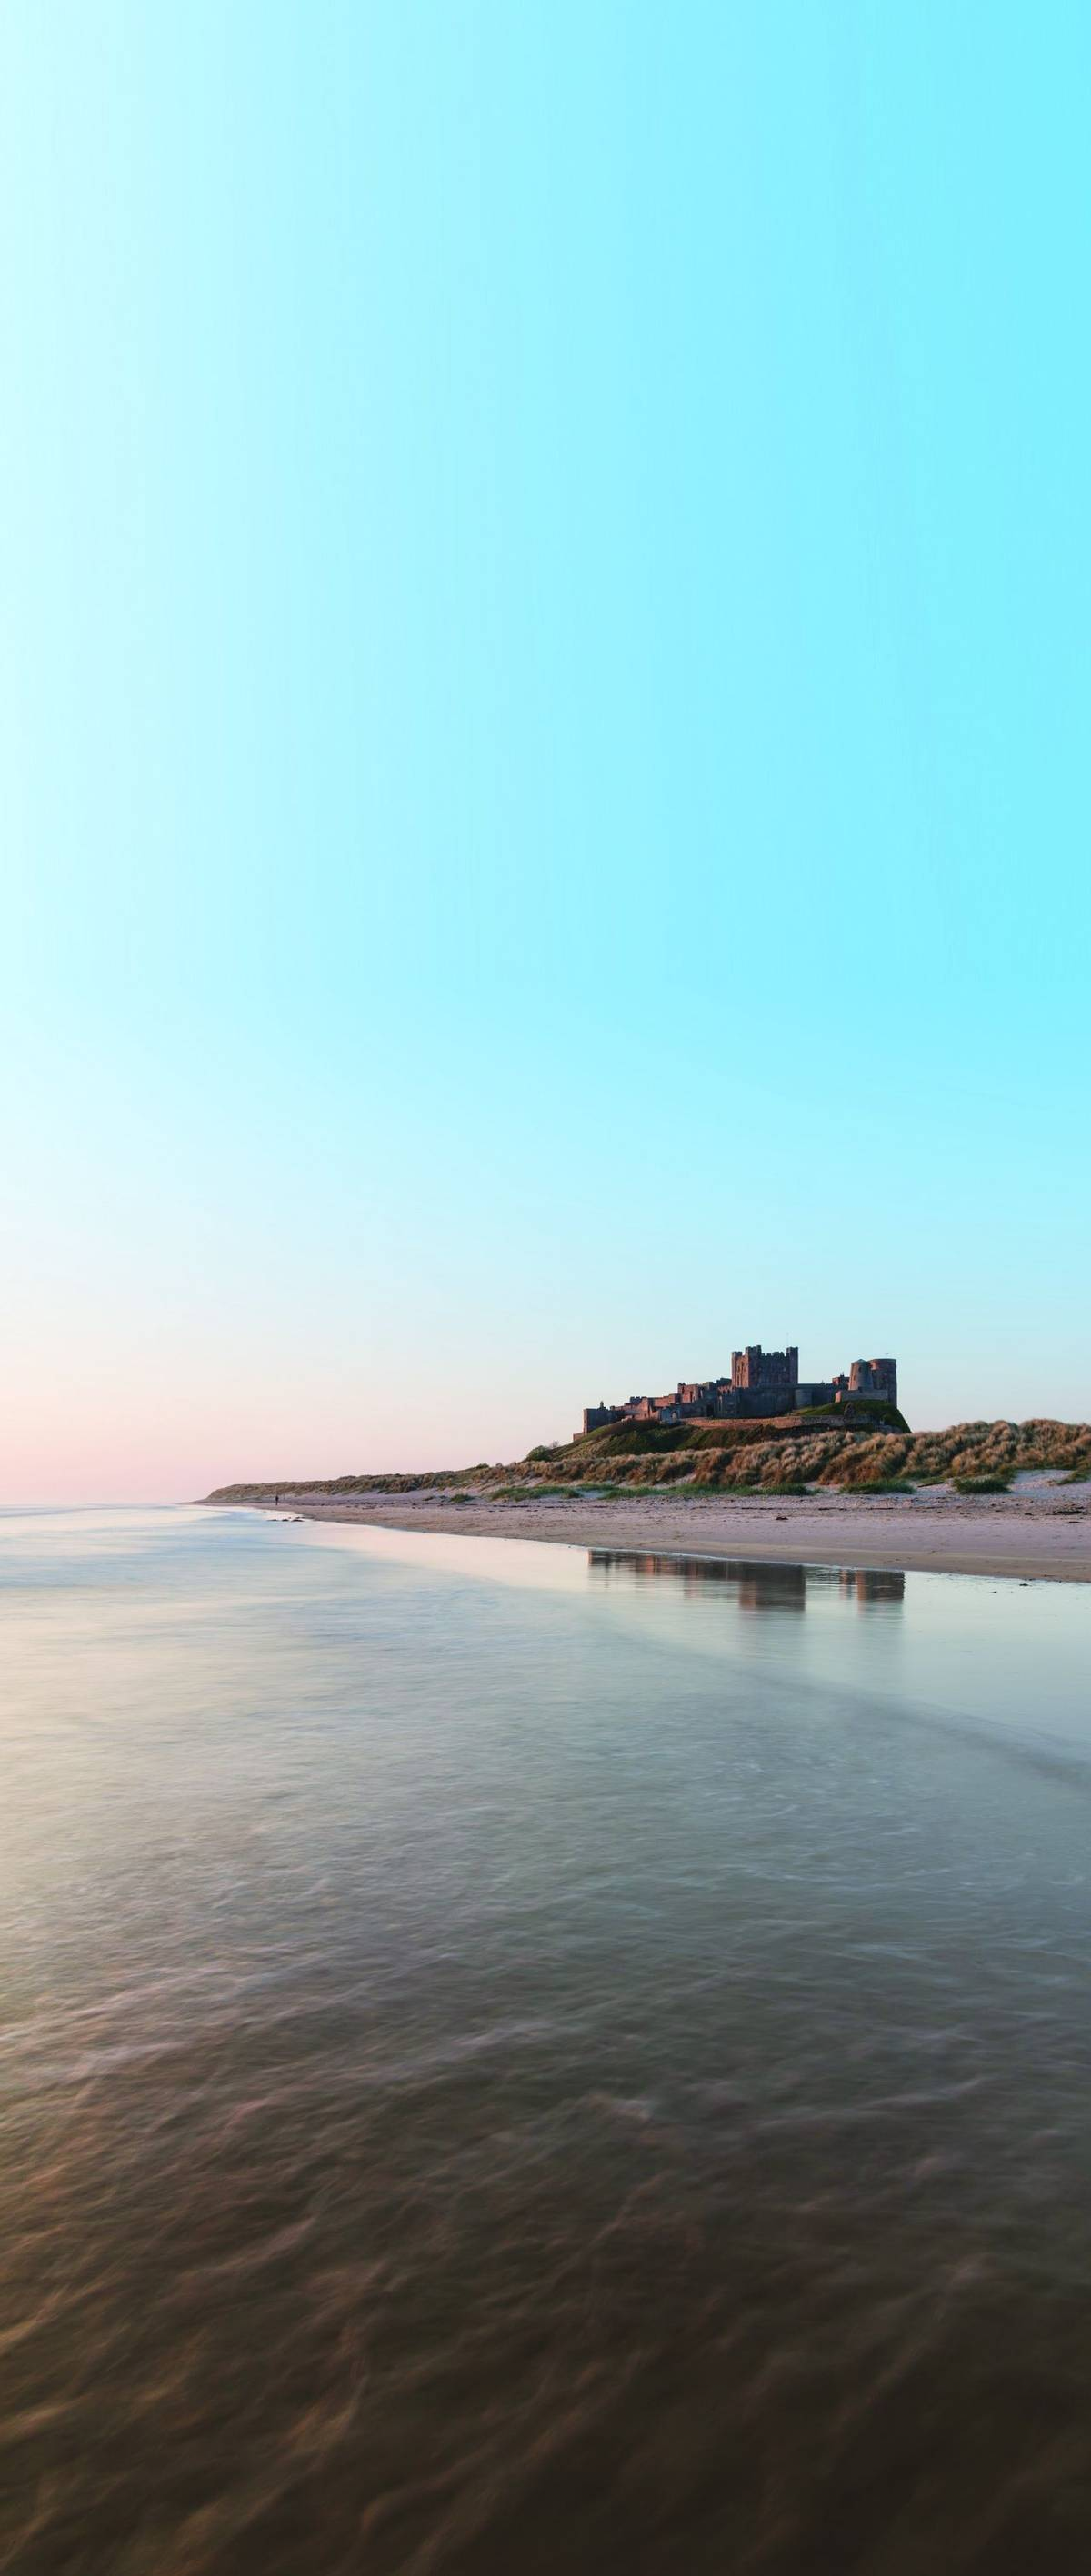 Beautiful landscape image of Bamburgh Castle on Northumberland coast at sunrise with vibrant colors